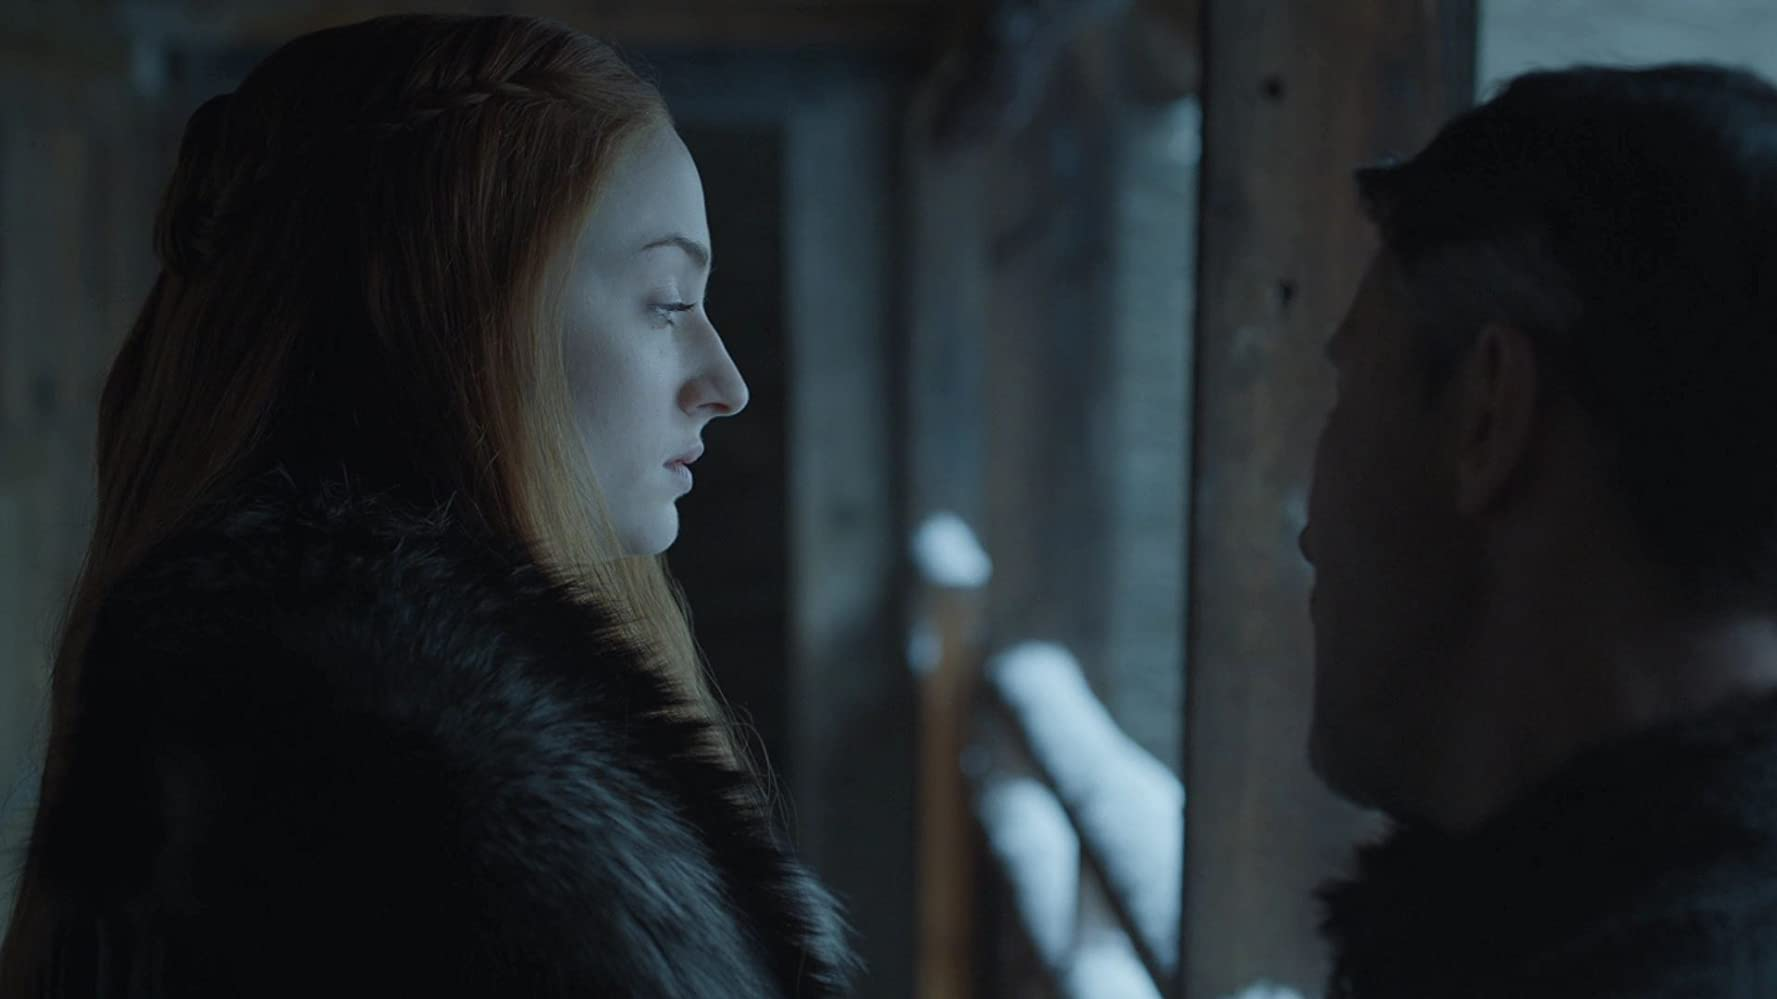 Aidan Gillen and Sophie Turner in Game of Thrones (2011)